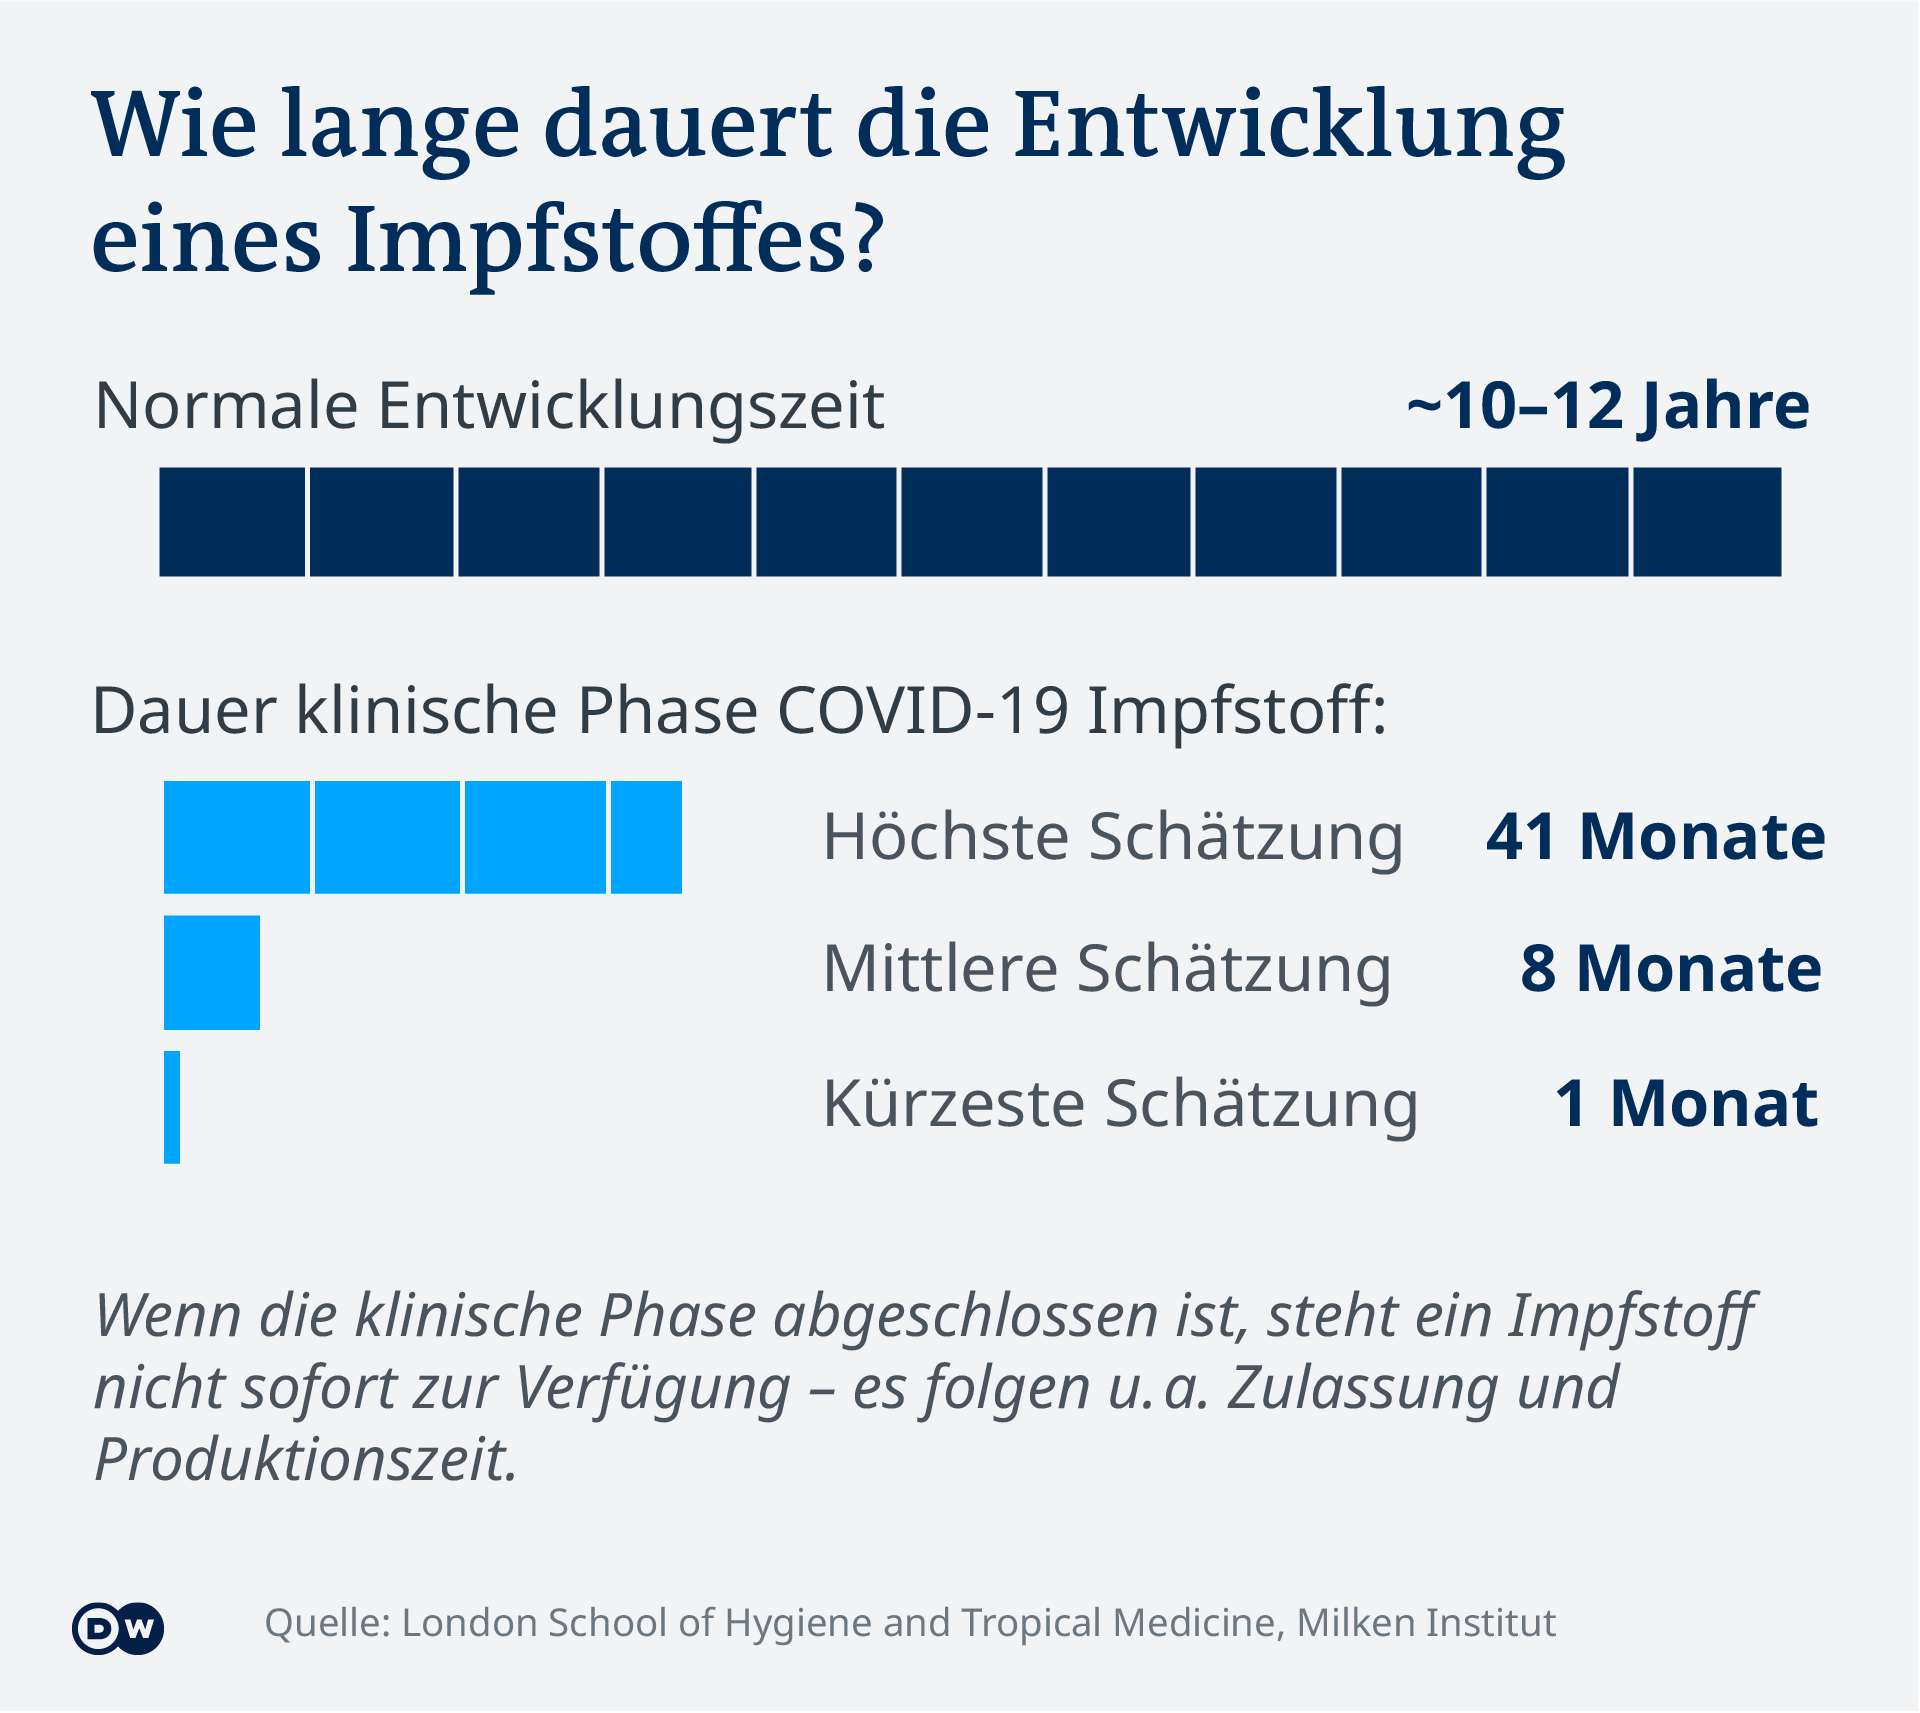 Data visualization - COVID-19 vaccine tracker - Duration - Update Jan 14, 2021 - German